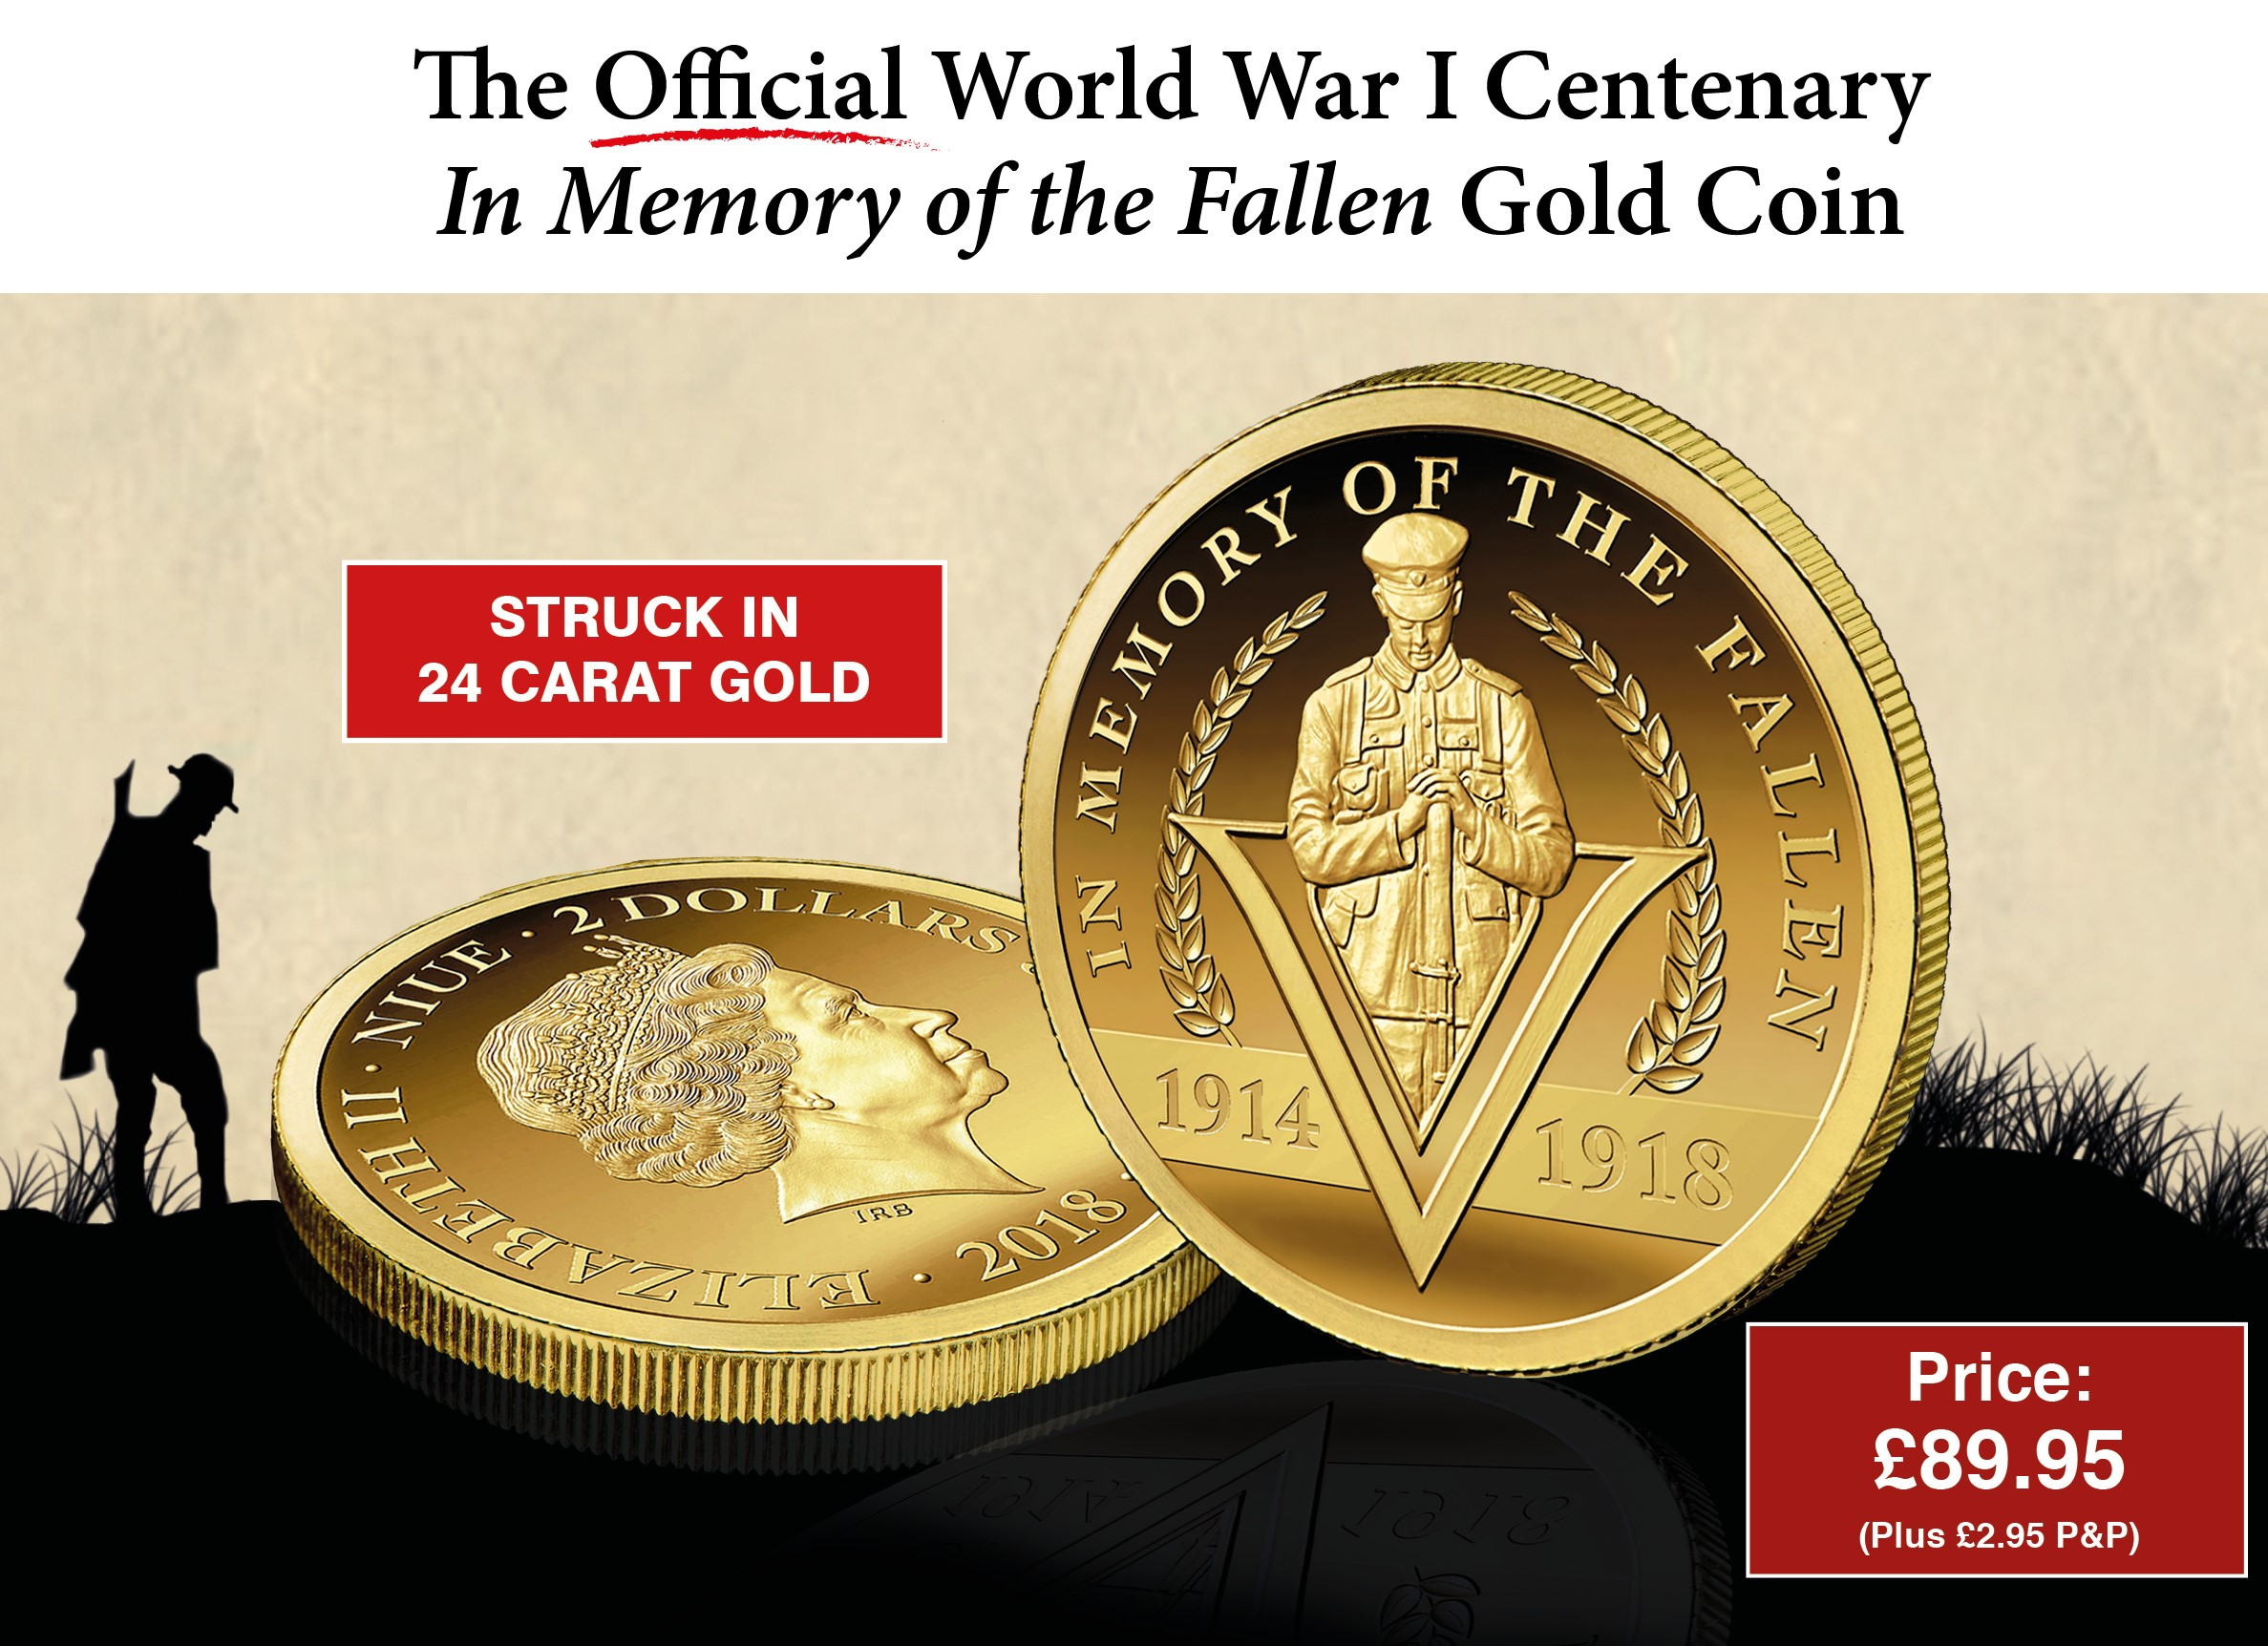 The World War I Centenary Gold Coin